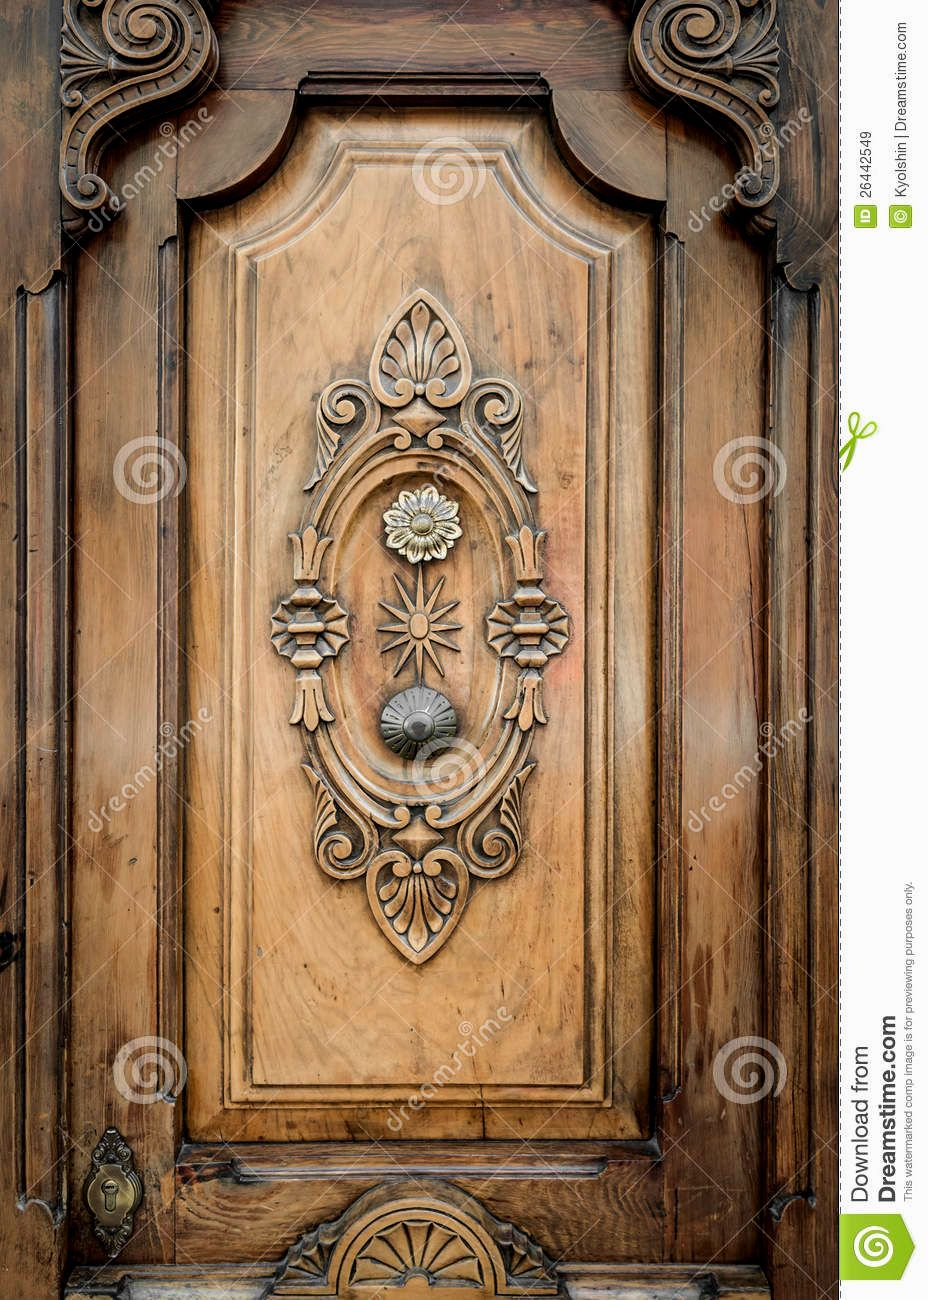 antique main door designs - Antique Main Door Designs Unique Pinterest Main Door Design